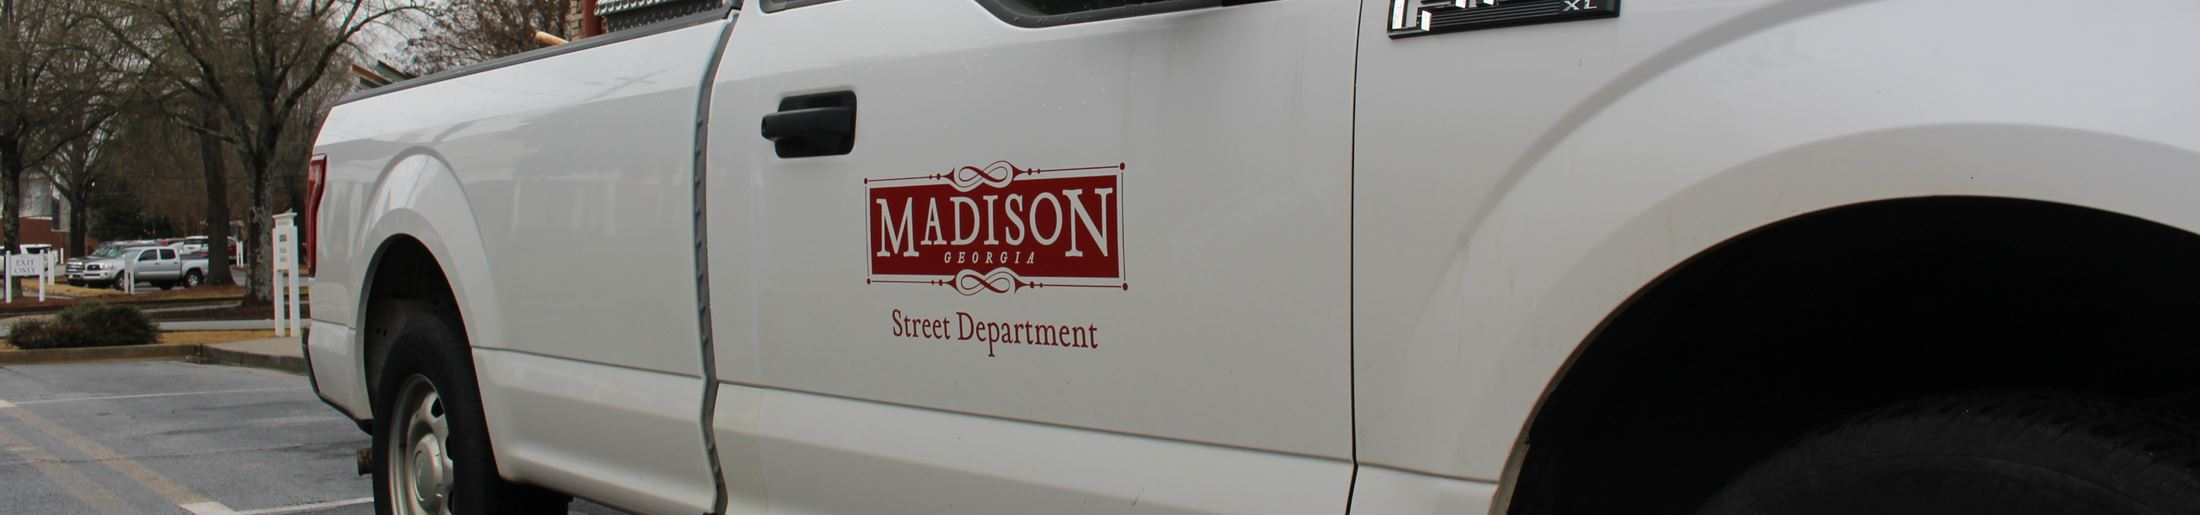 street department truck